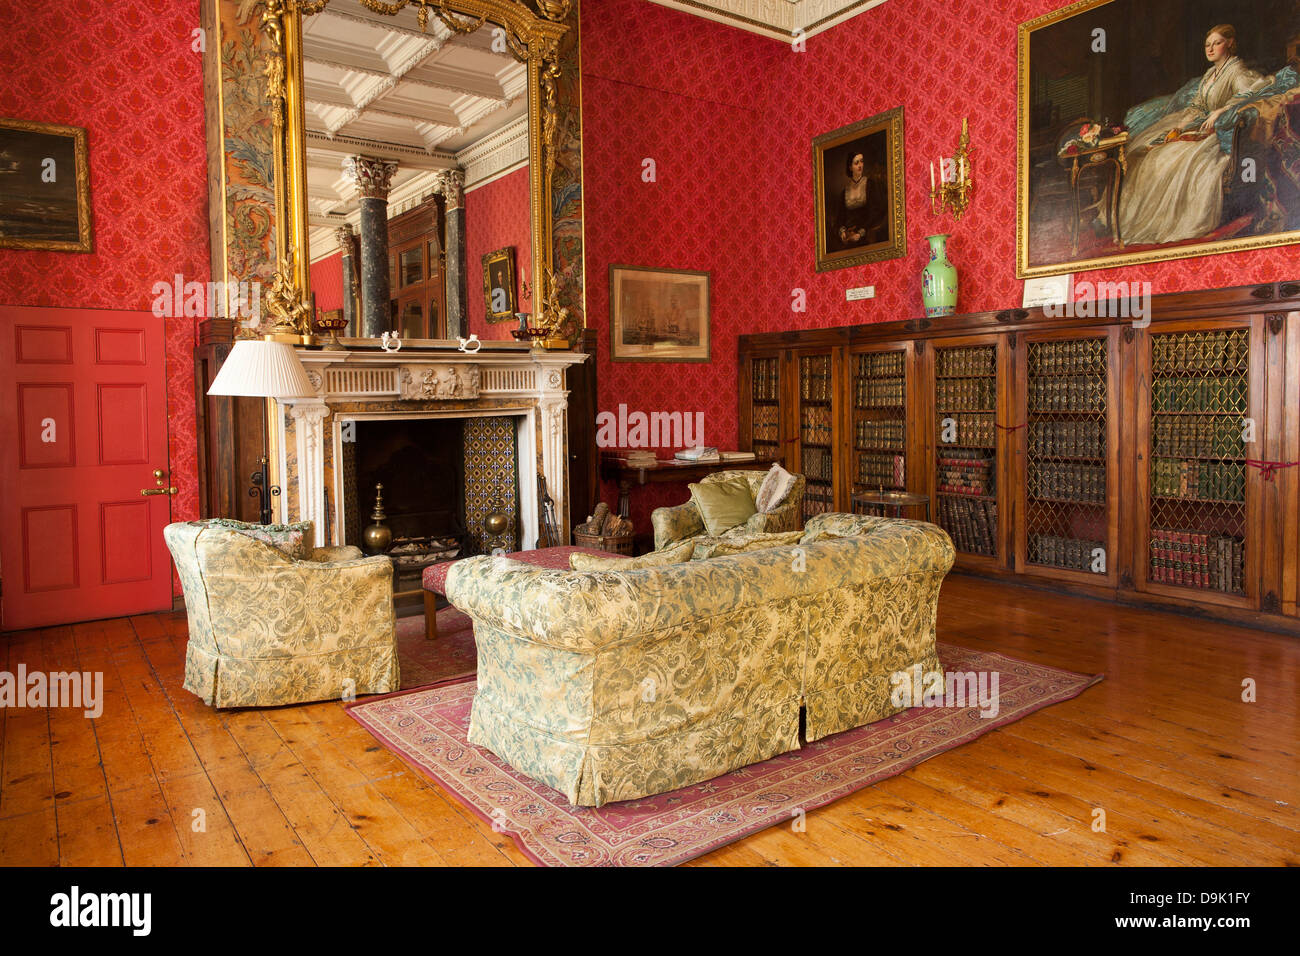 elegant and richly decorated interior rooms inside bantry house